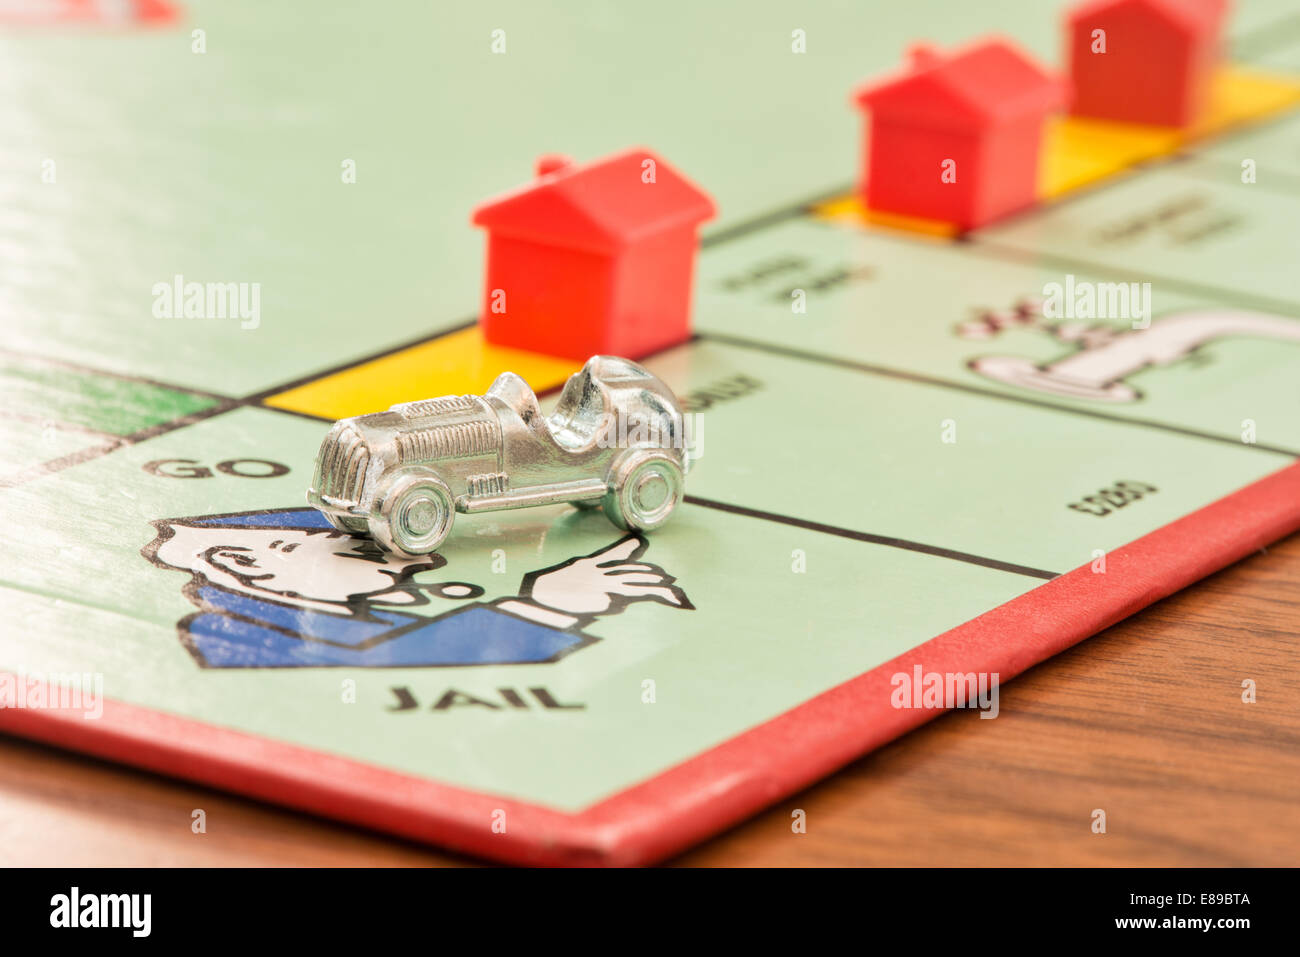 The metal car charm on the go to jail square of the Waddingtons Monopoly board game - Stock Image